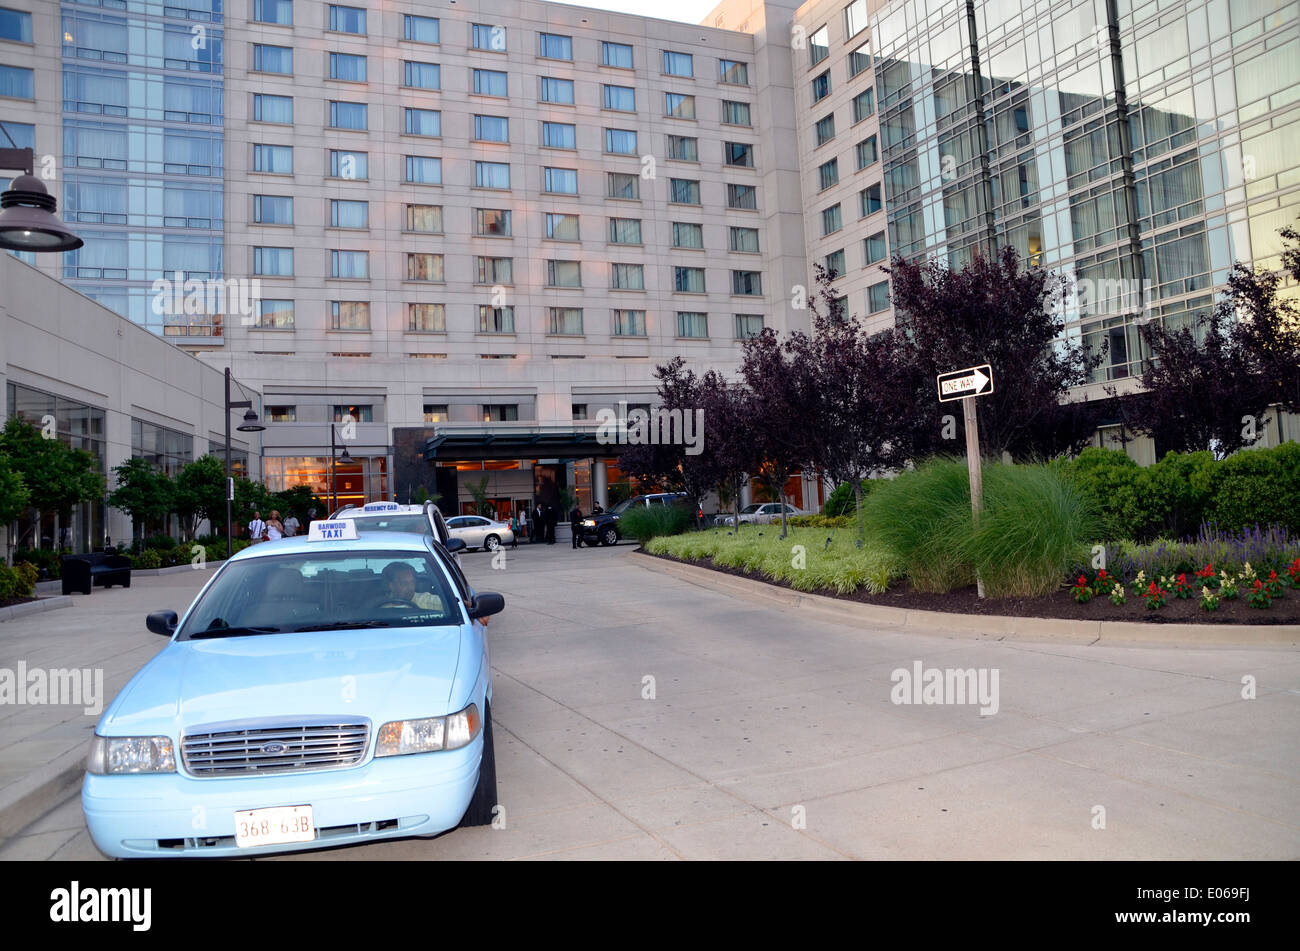 taxicab sitting outside a hotel in Bethesda, aryland - Stock Image